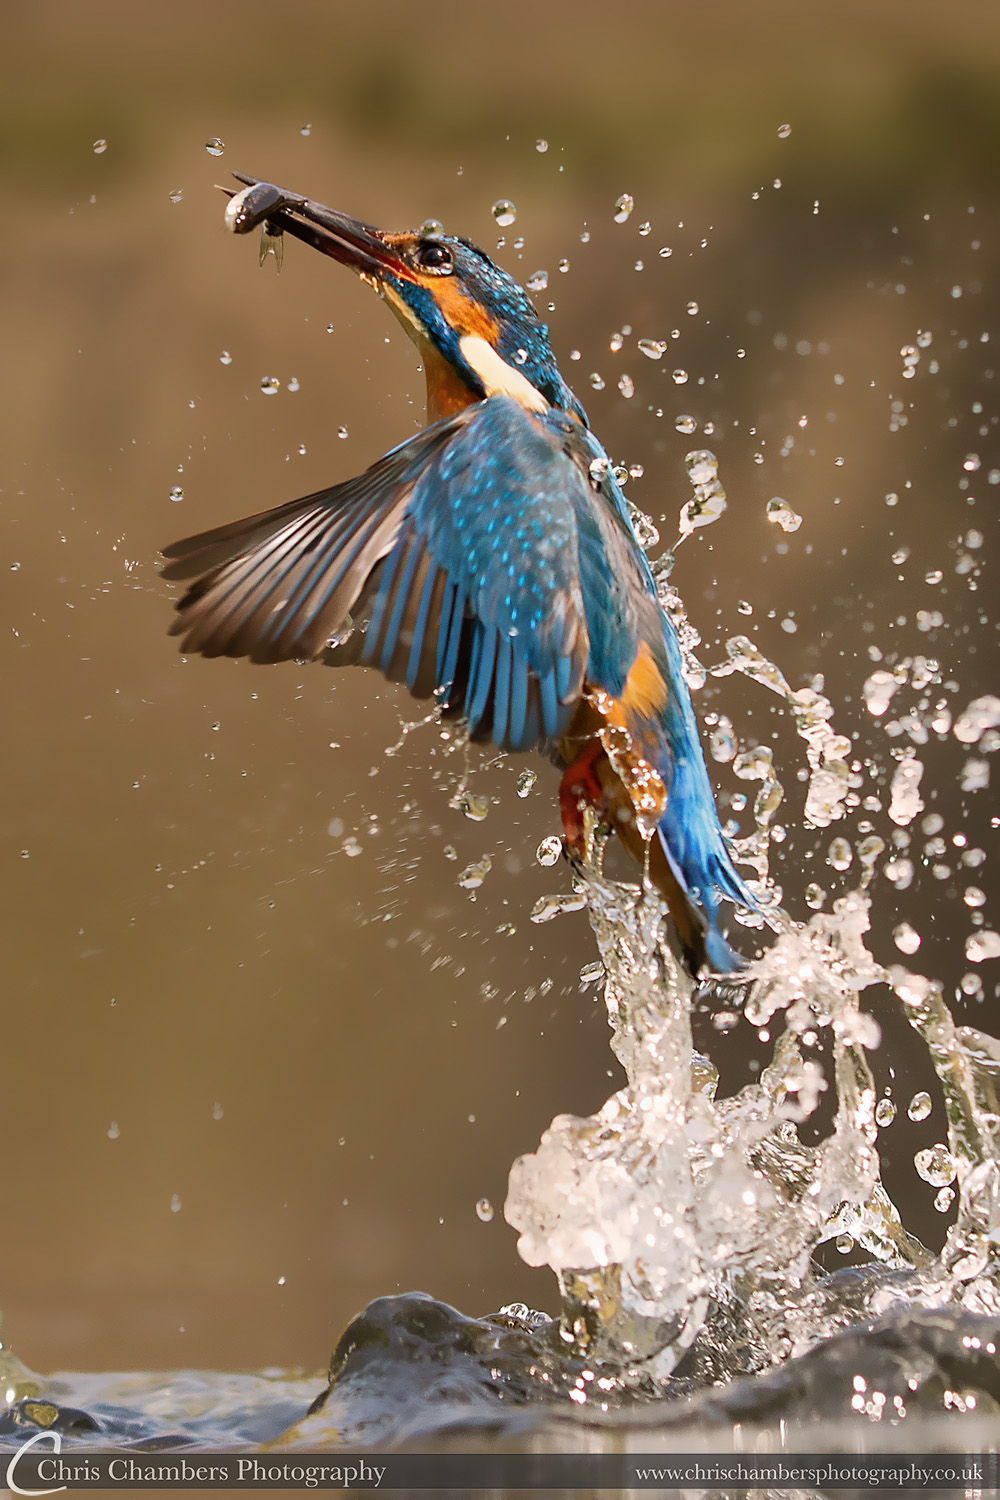 Kingfisher - Diving kingfisher photography. Award winning nature photography from Chris Chambers